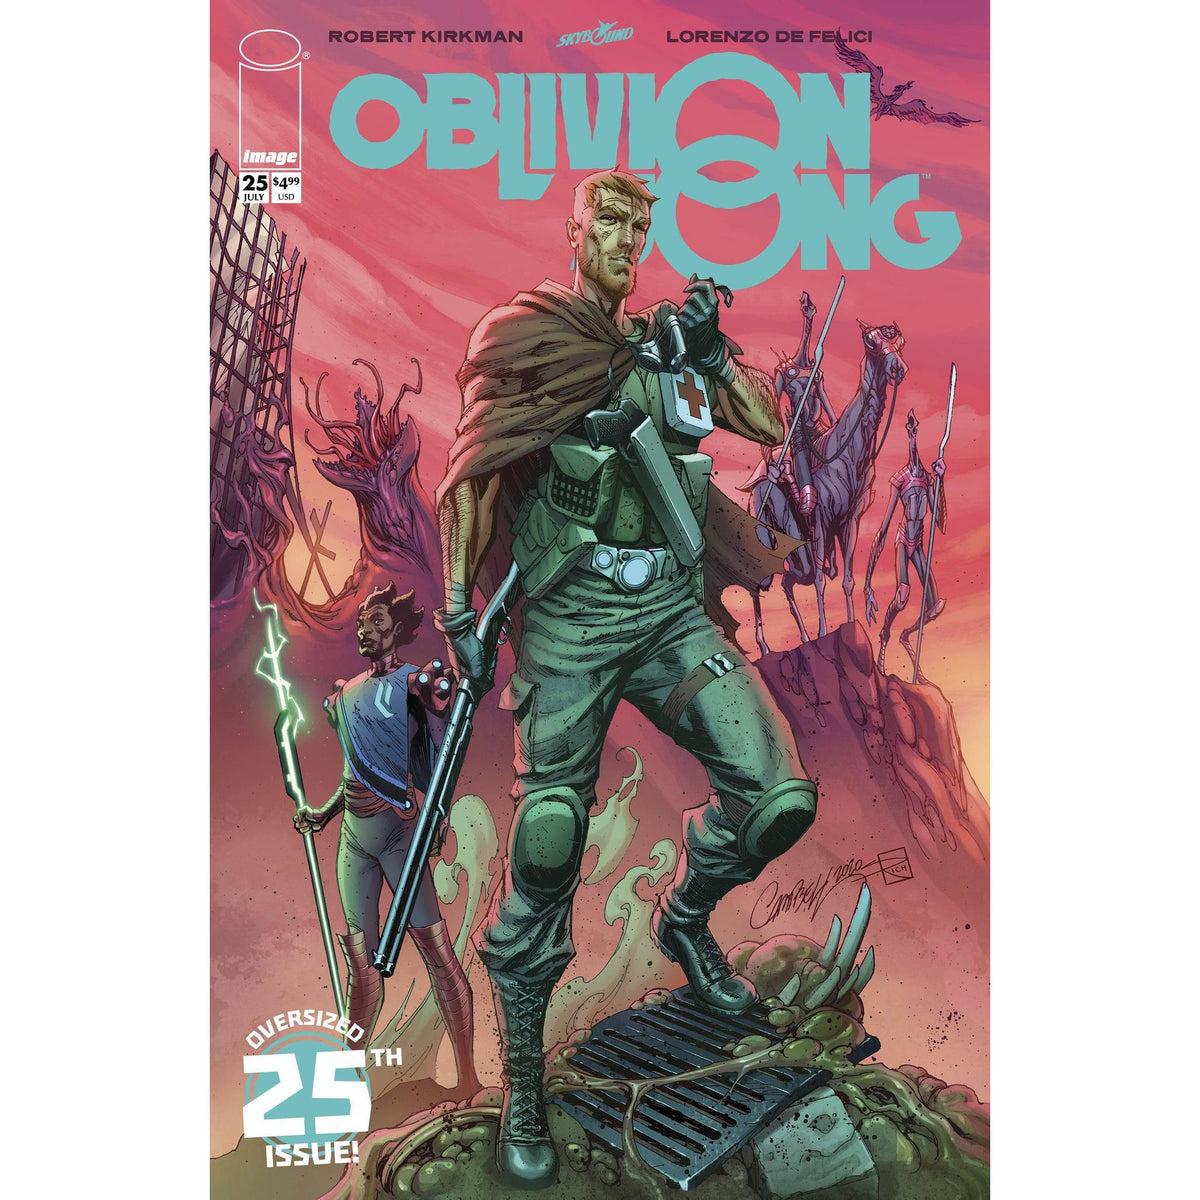 OBLIVION SONG BY KIRKMAN & DE FELICI #25 - CAMPBELL COVER E